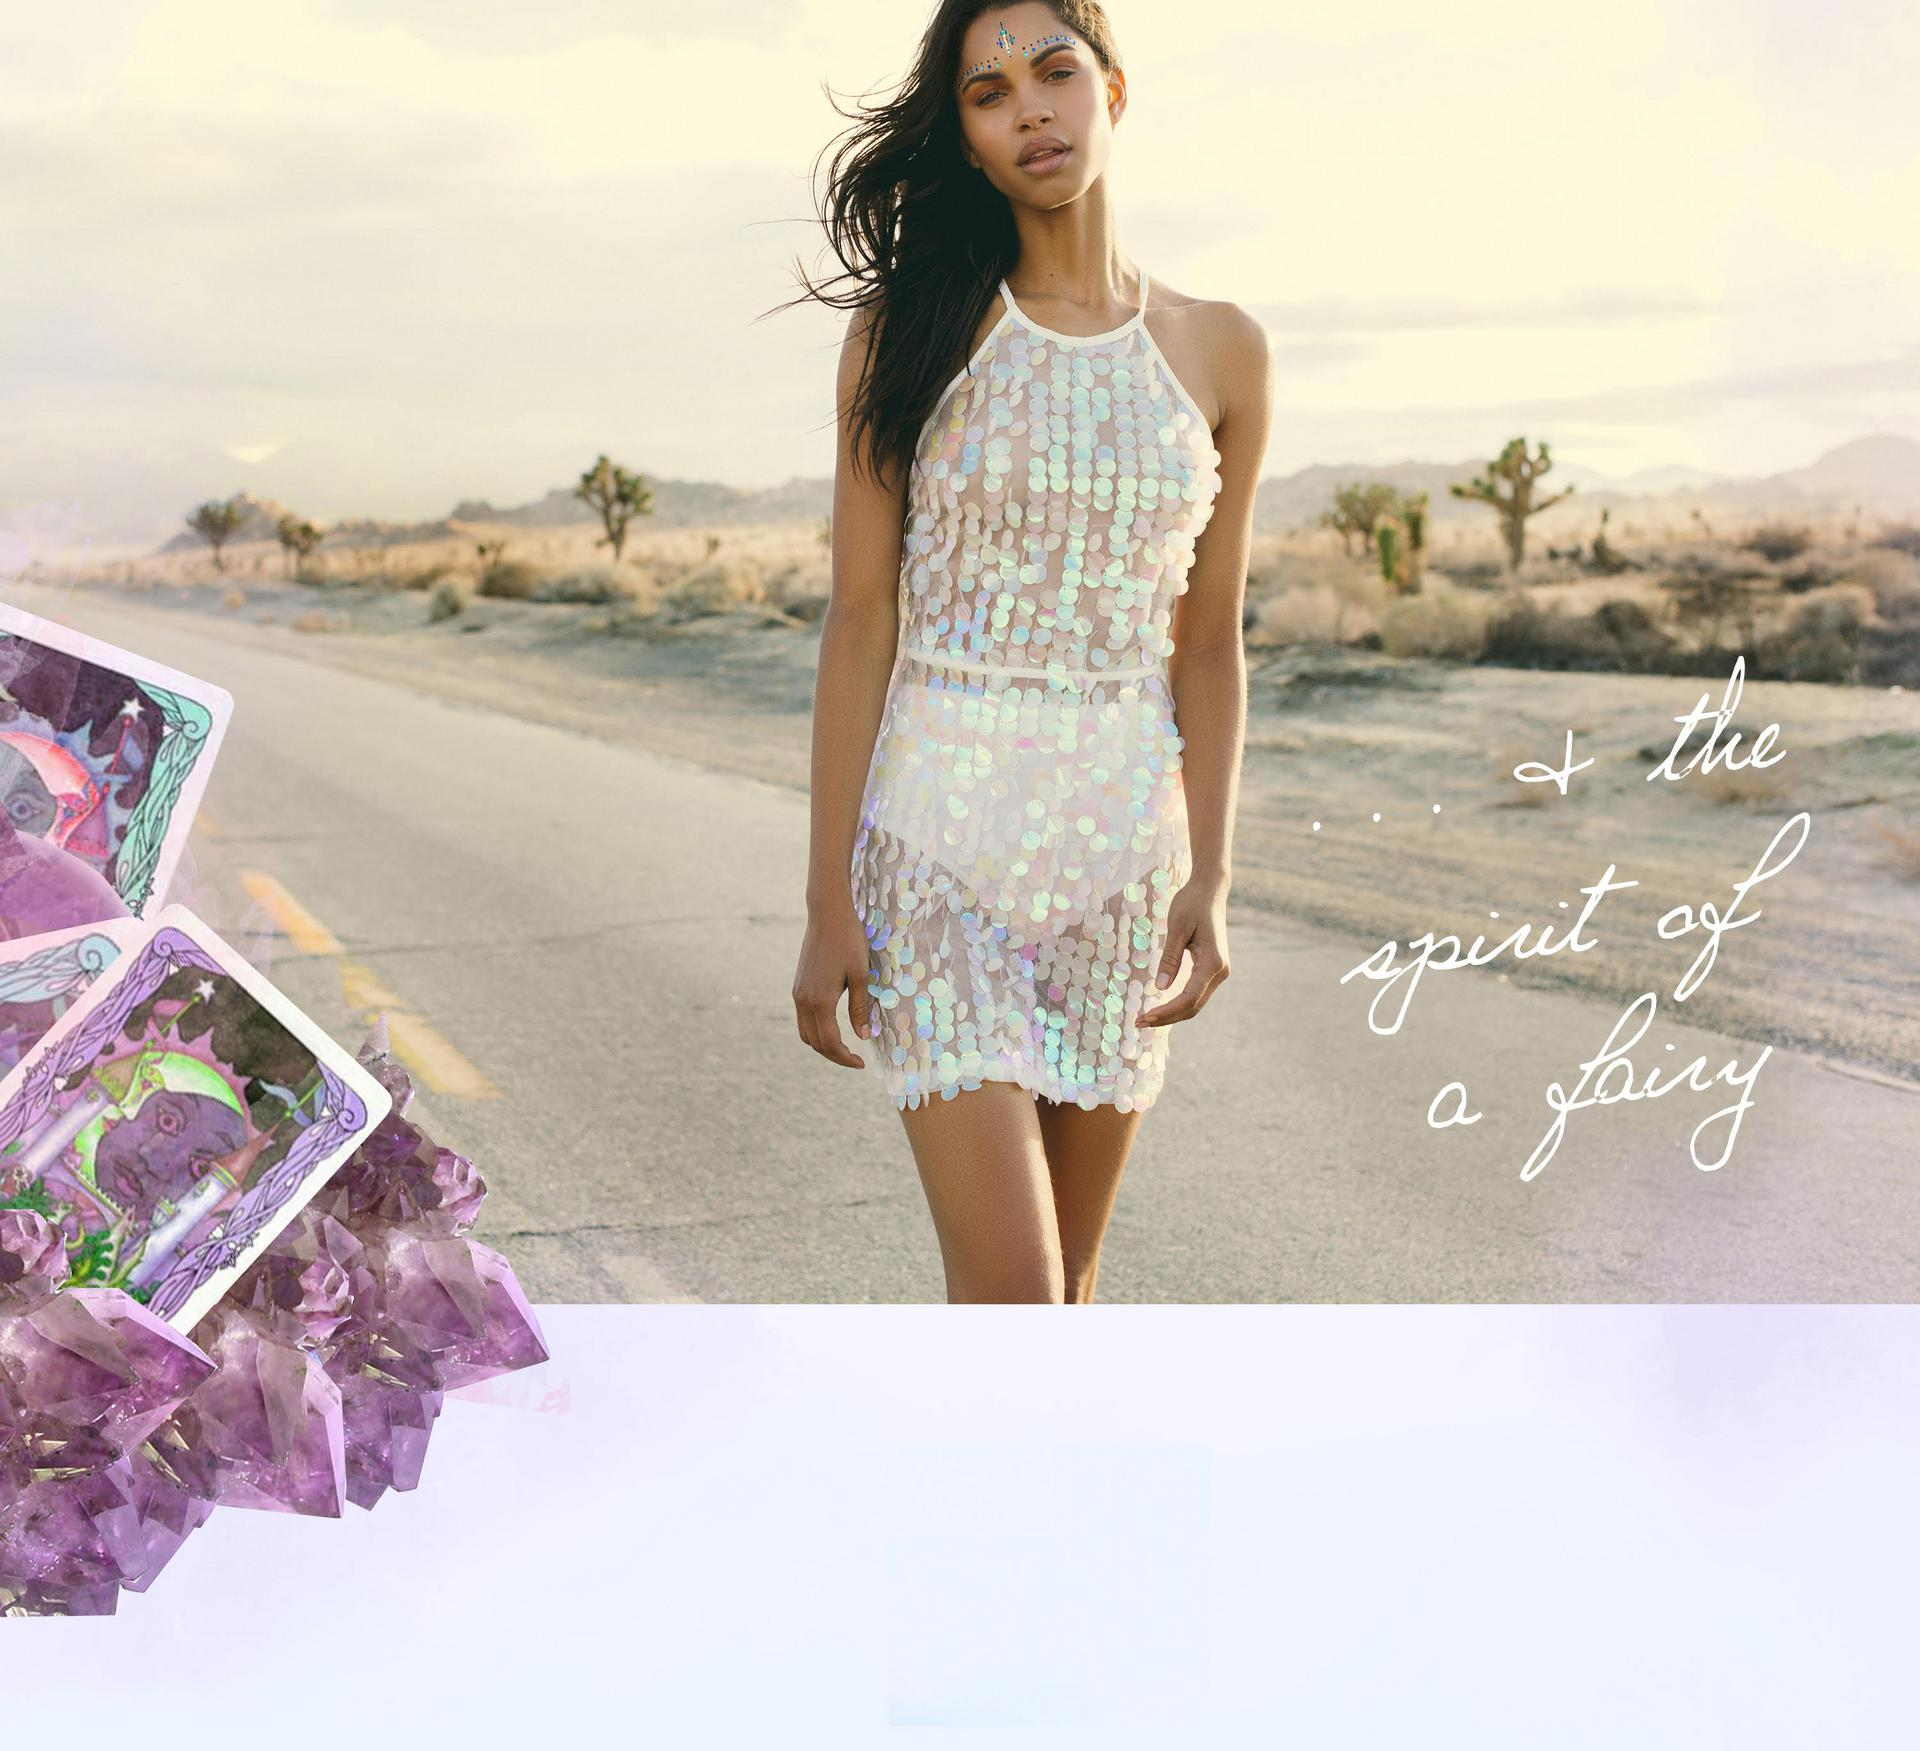 Gypsy Soul Campaign Image Fifteen